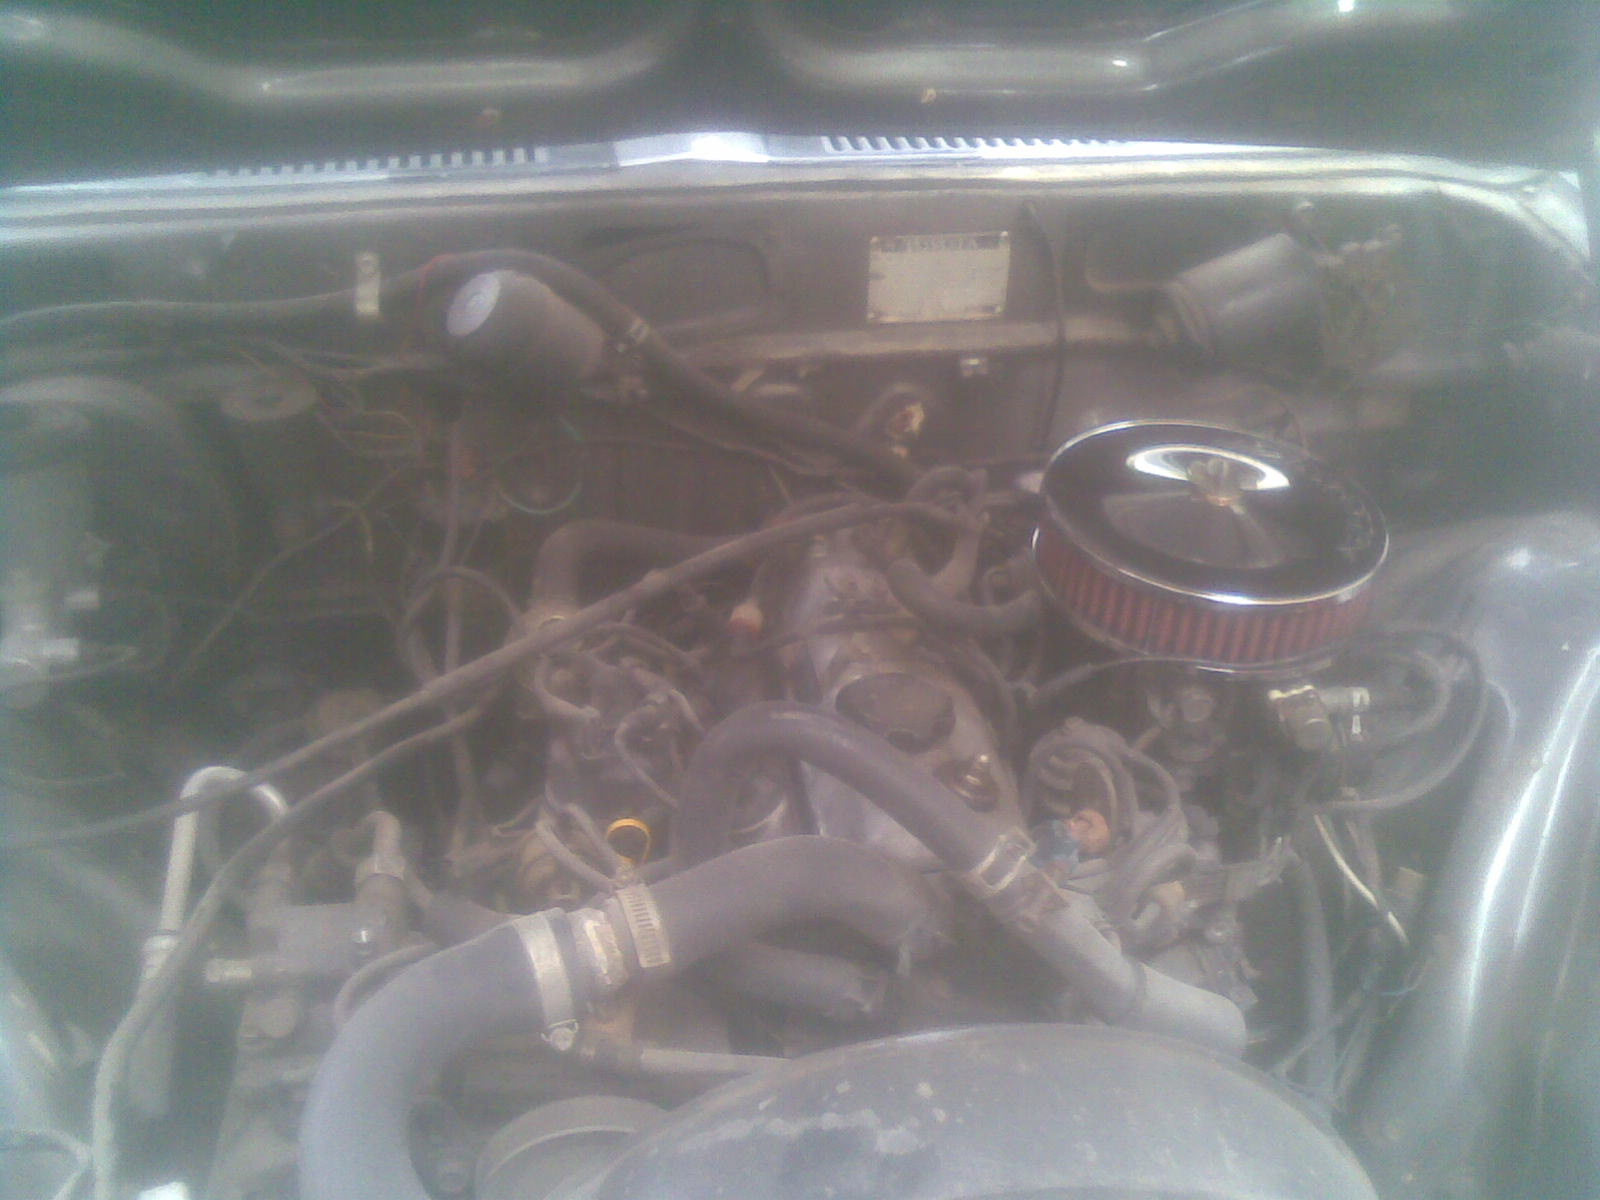 1976 Toyota Corona picture, engine